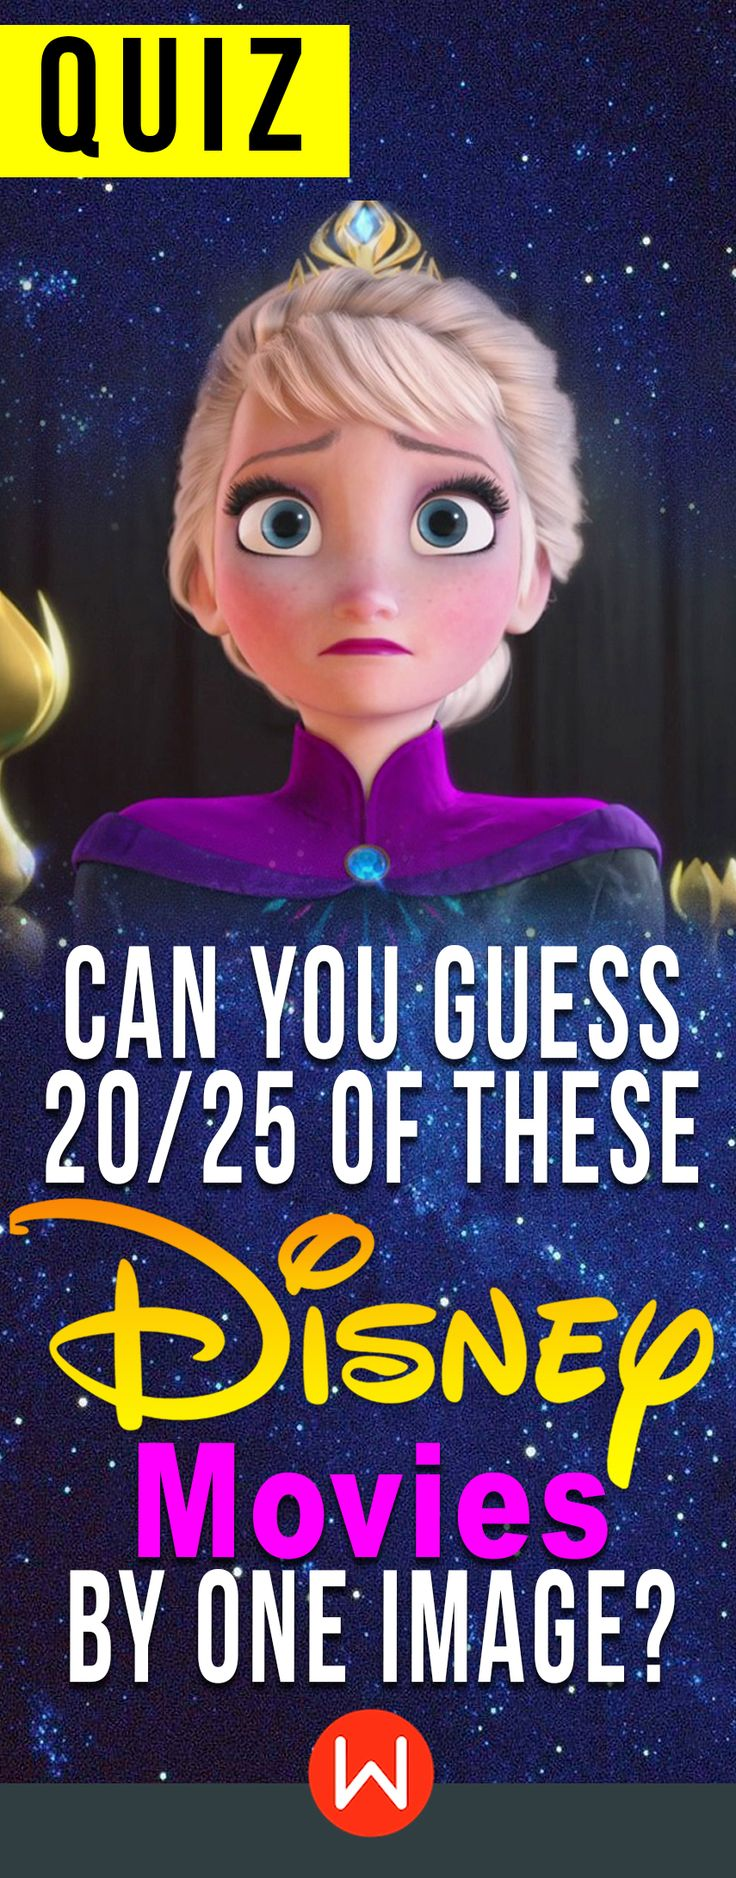 """All our dreams can come true, if we have the courage to pursue them."" - Walt Disney How well do you know the Disney movies? Can you ace this Disney trivia quiz? Buzzfeed quiz, Playbuzz quizzes, Fun Quiz, Disney Movies game."